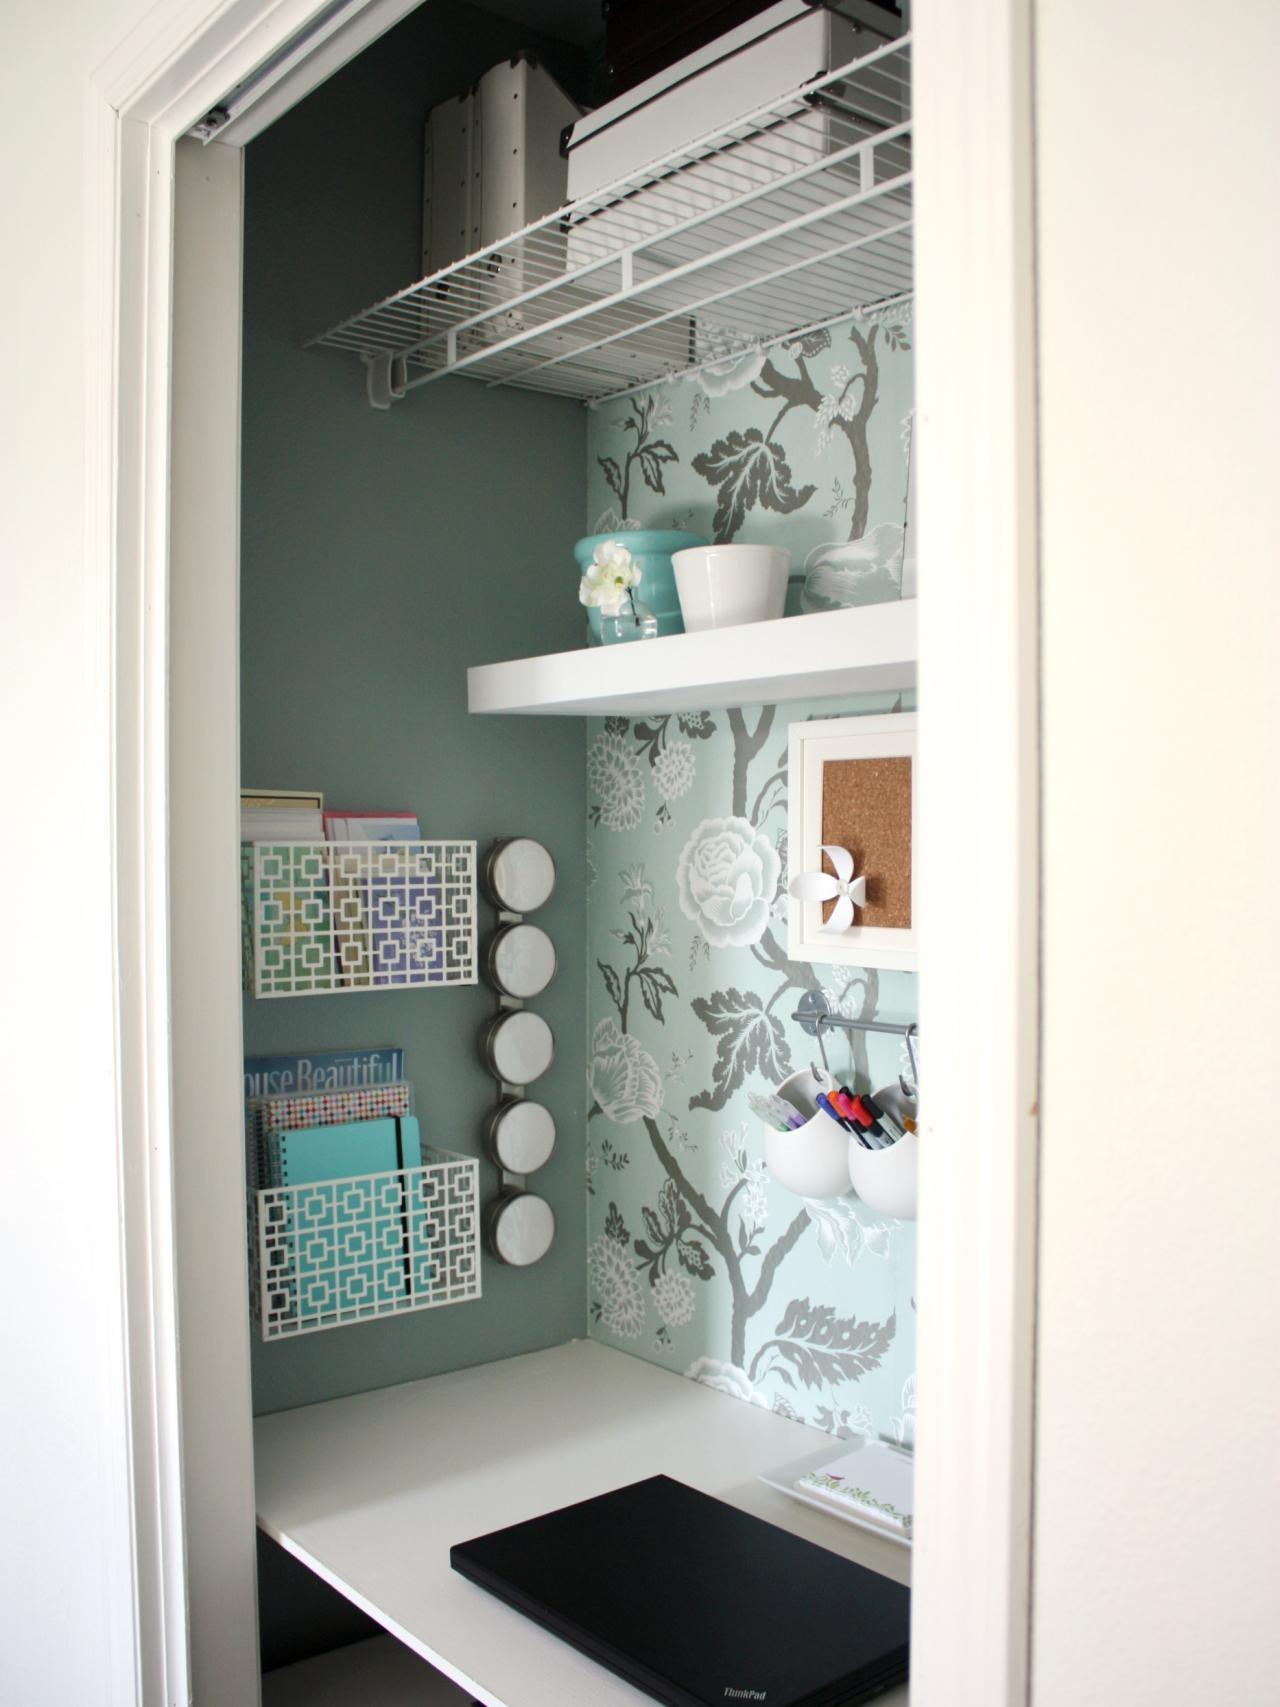 Utilize Spaces Creative Shelves Interior Design